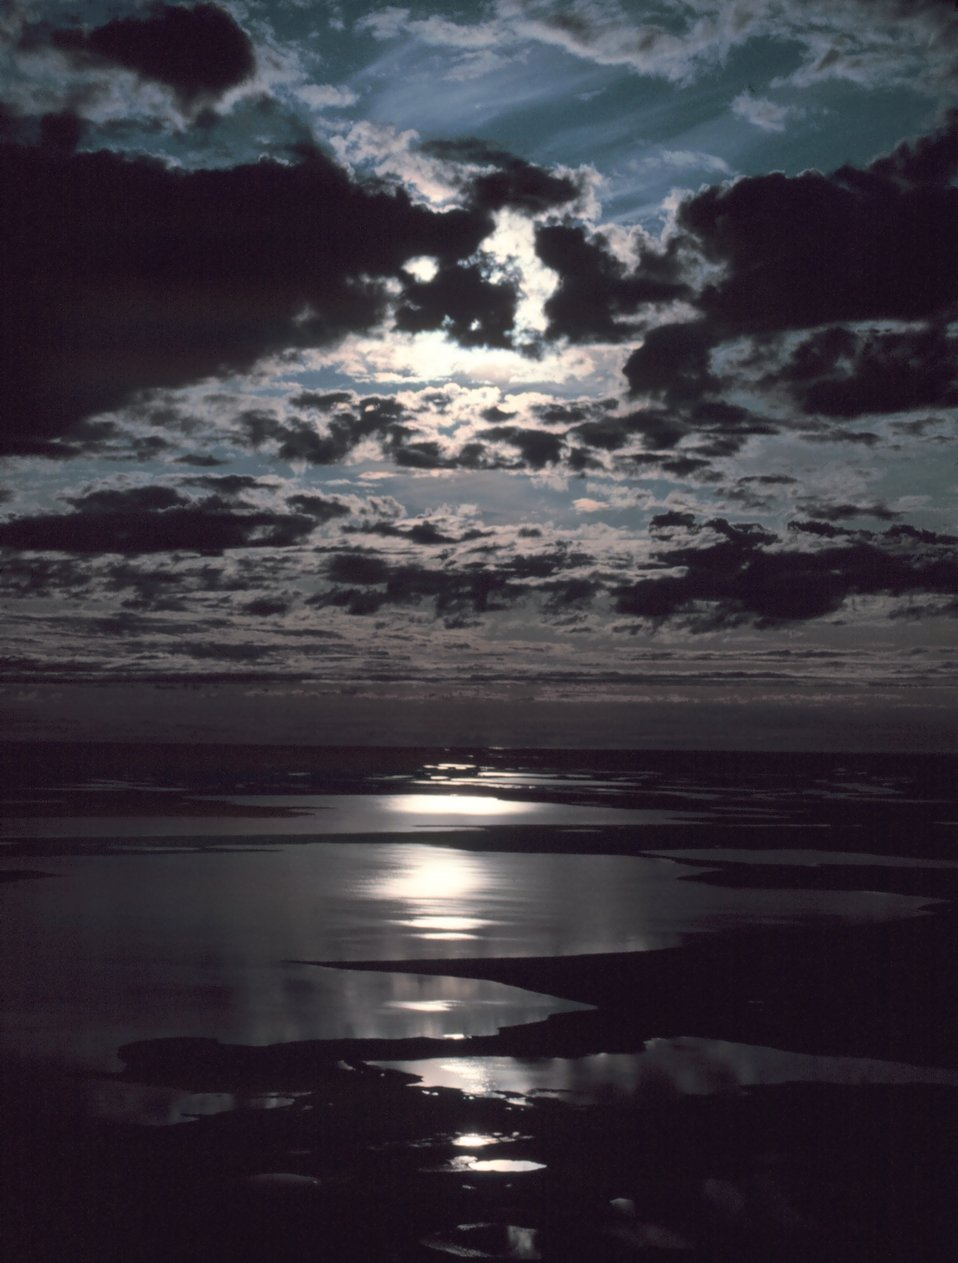 Moonbeams reflecting off the Beaufort Sea.